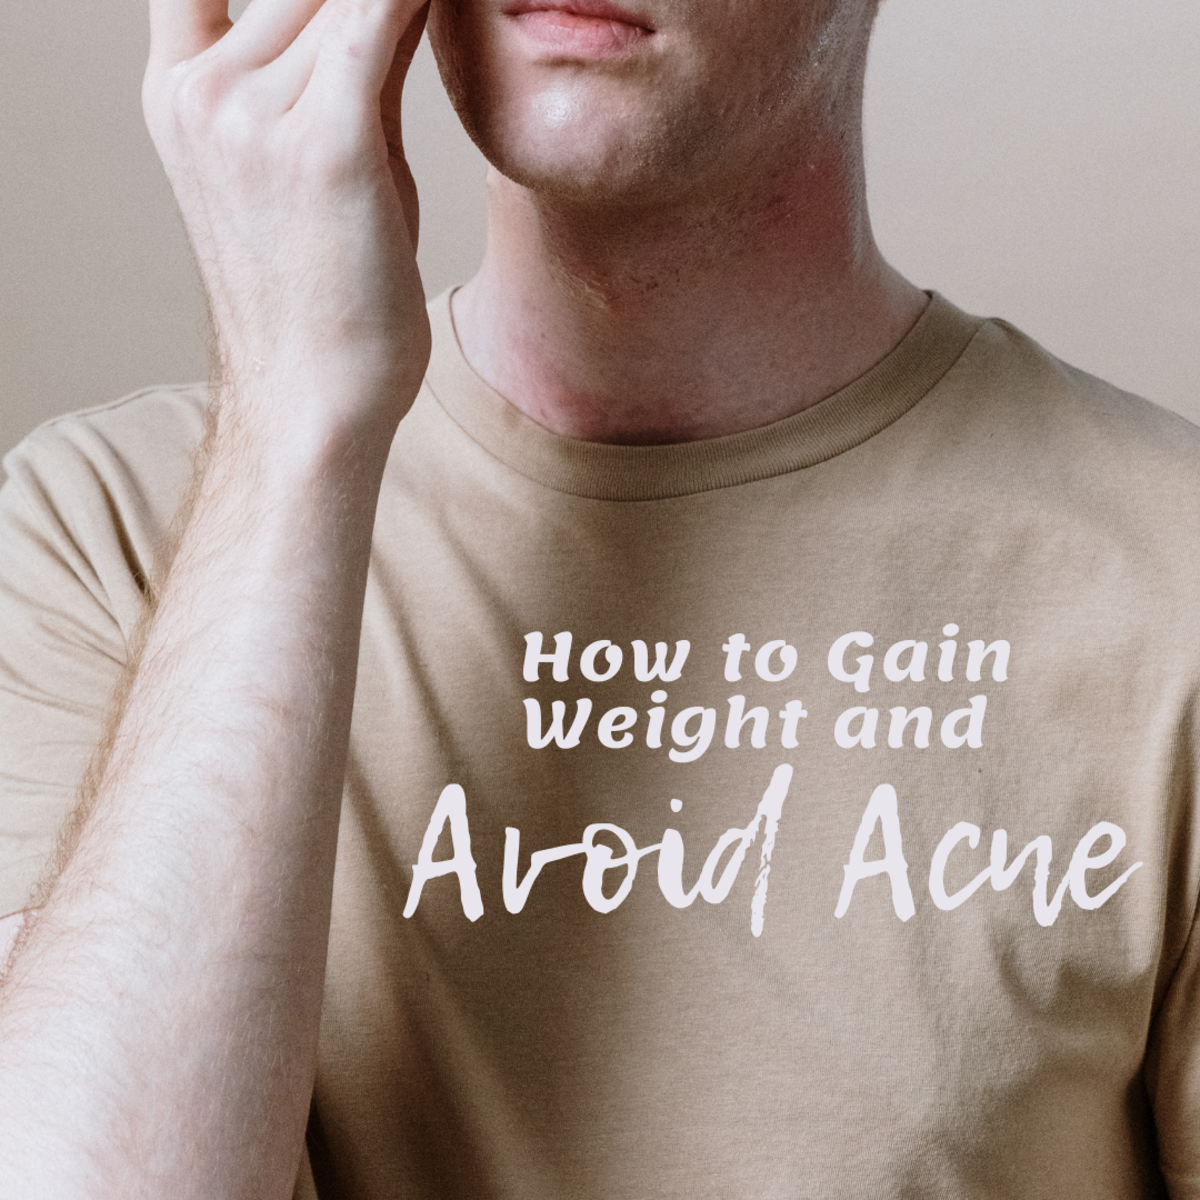 Learn tips for ectomorphs to gain weight without getting acne or exacerbating preexisting acne.